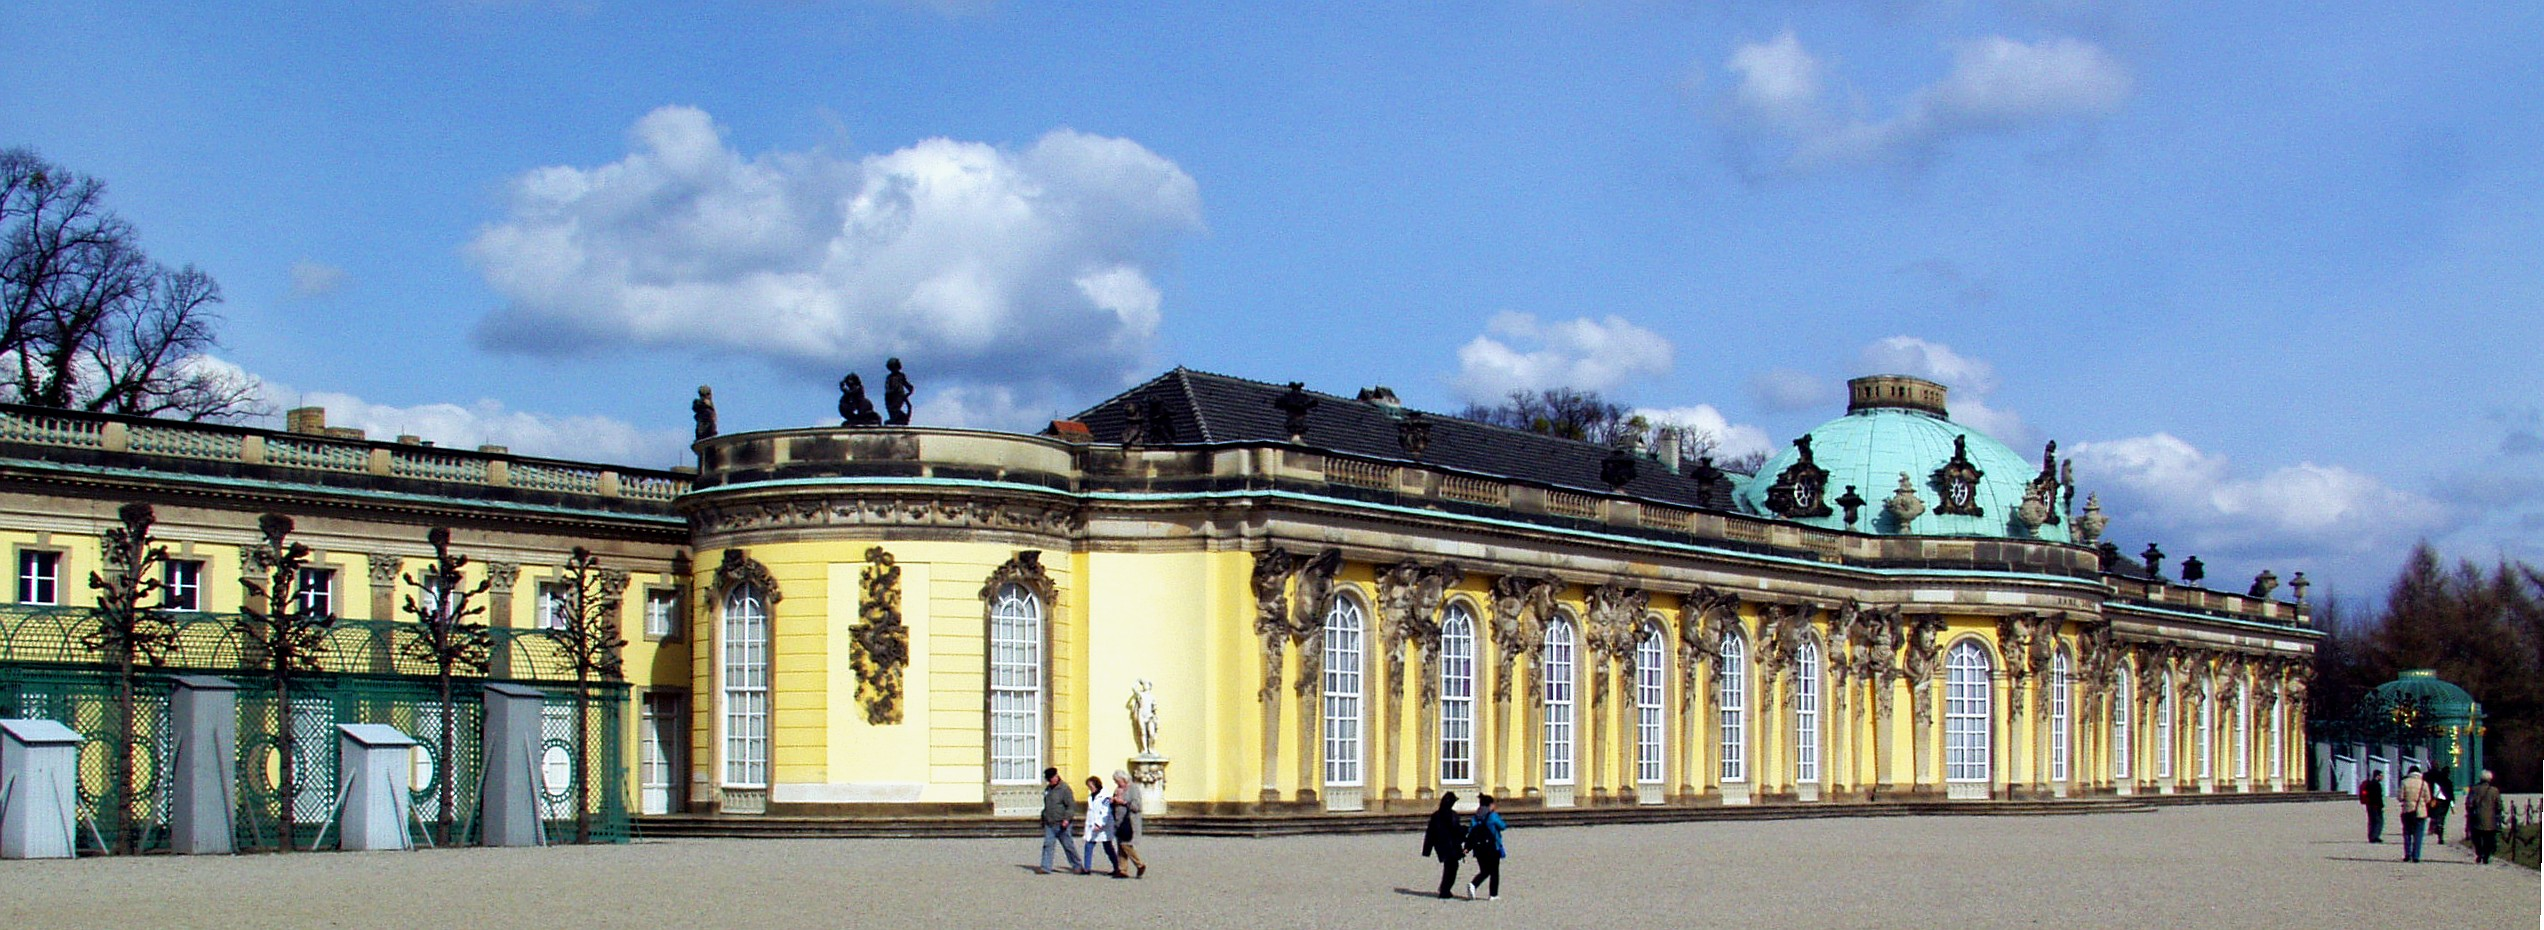 Schloss Sanssouci in Potsdam, Germany